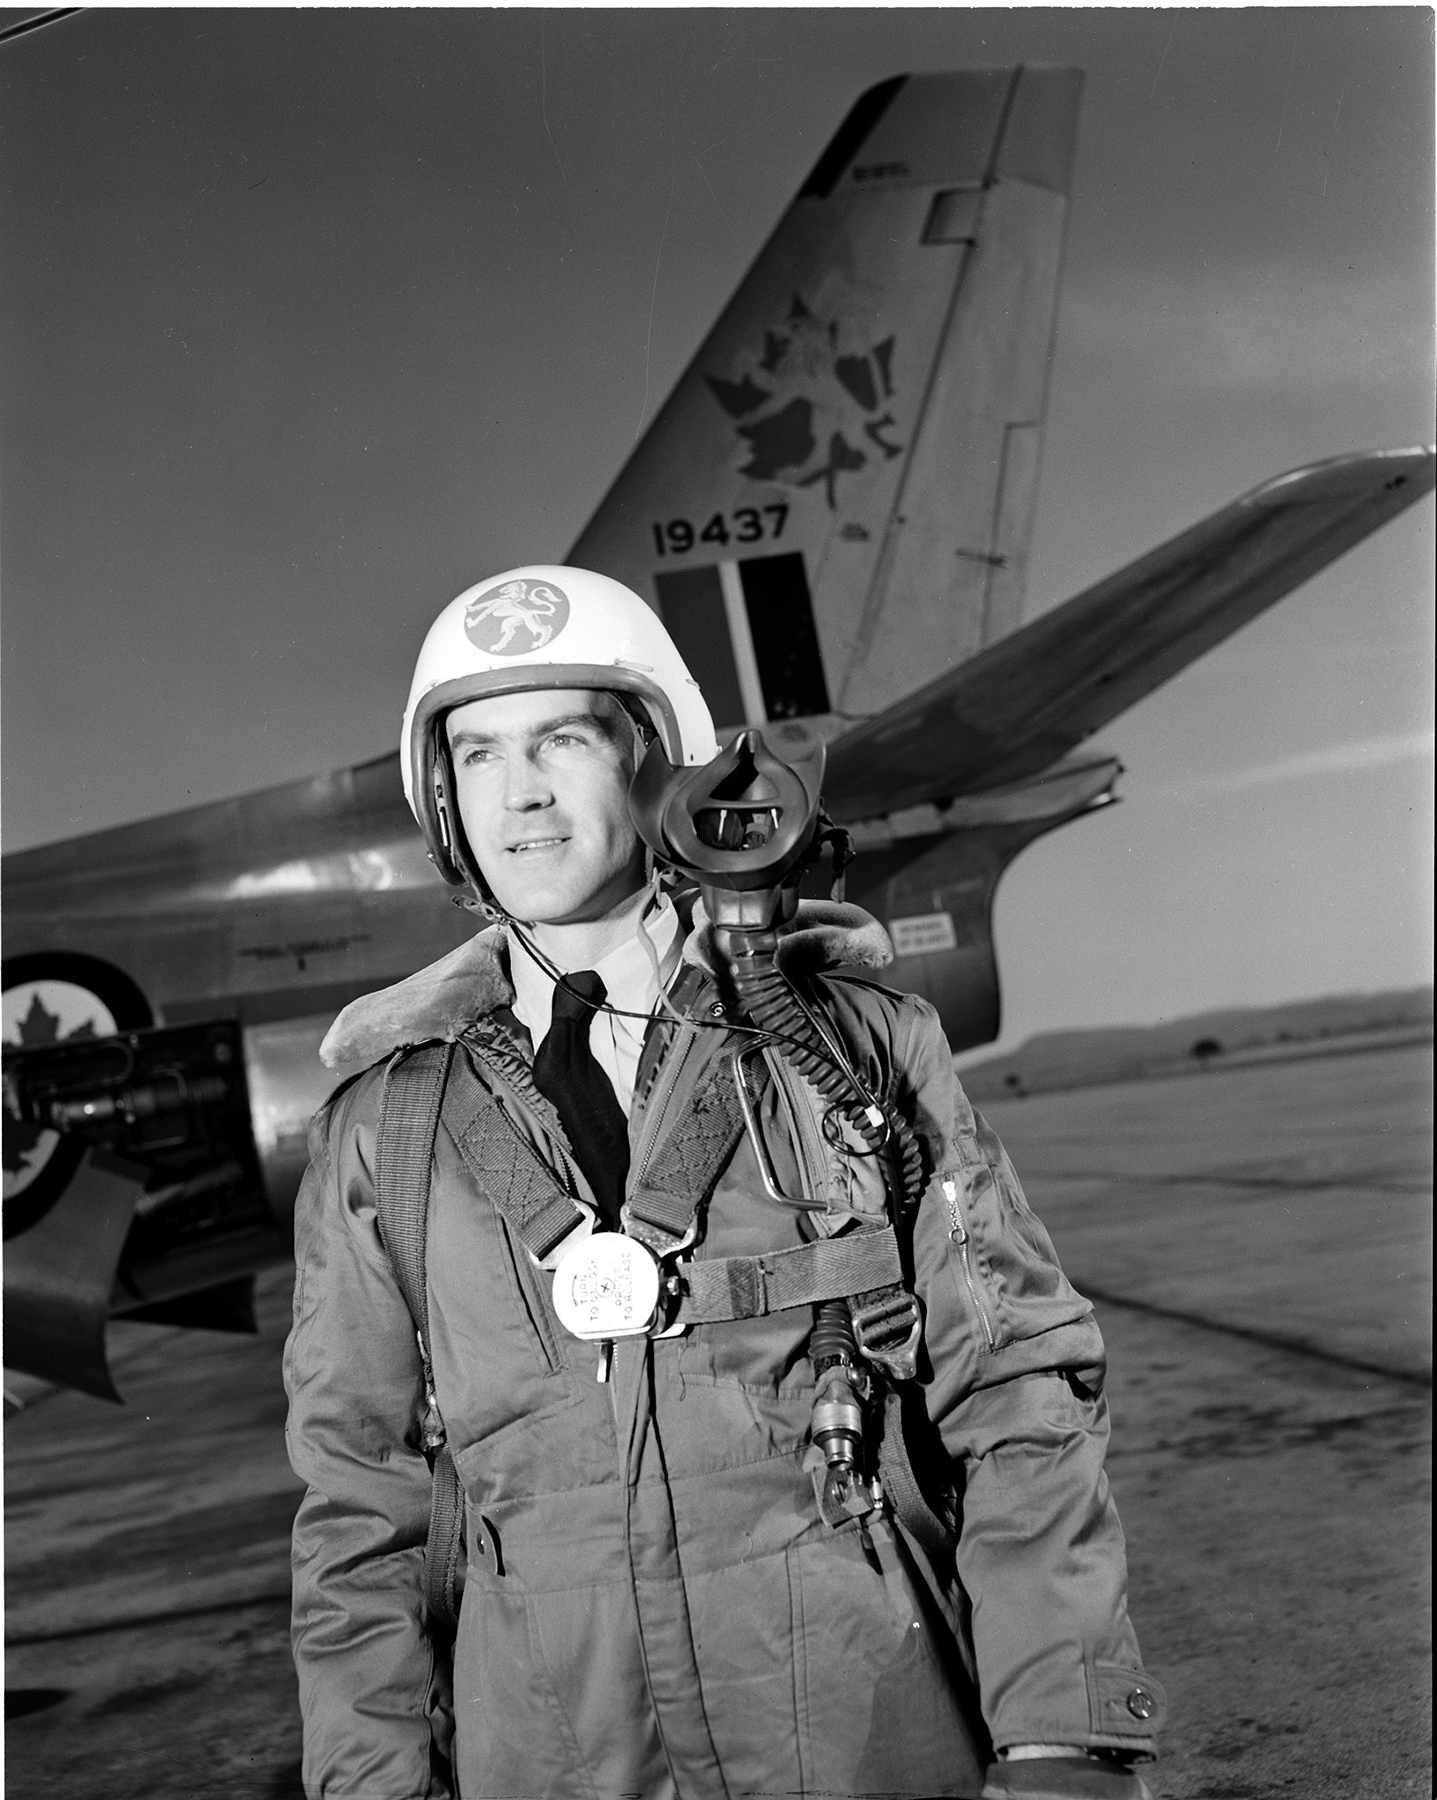 On February 2, 1953, Flying Officer J.B. Mullin of Montreal stands to the side of his CF-104 Starfighter supersonic fighter at St. Hubert, Québec. Used primarily as a ground attack, low-level strike and reconnaissance aircraft, the Starfighter served 427 Squadron and the RCAF beginning in the early-1960s, replacing its predecessor, the F-86 Sabre. PHOTO: DND Archives, PL-56148